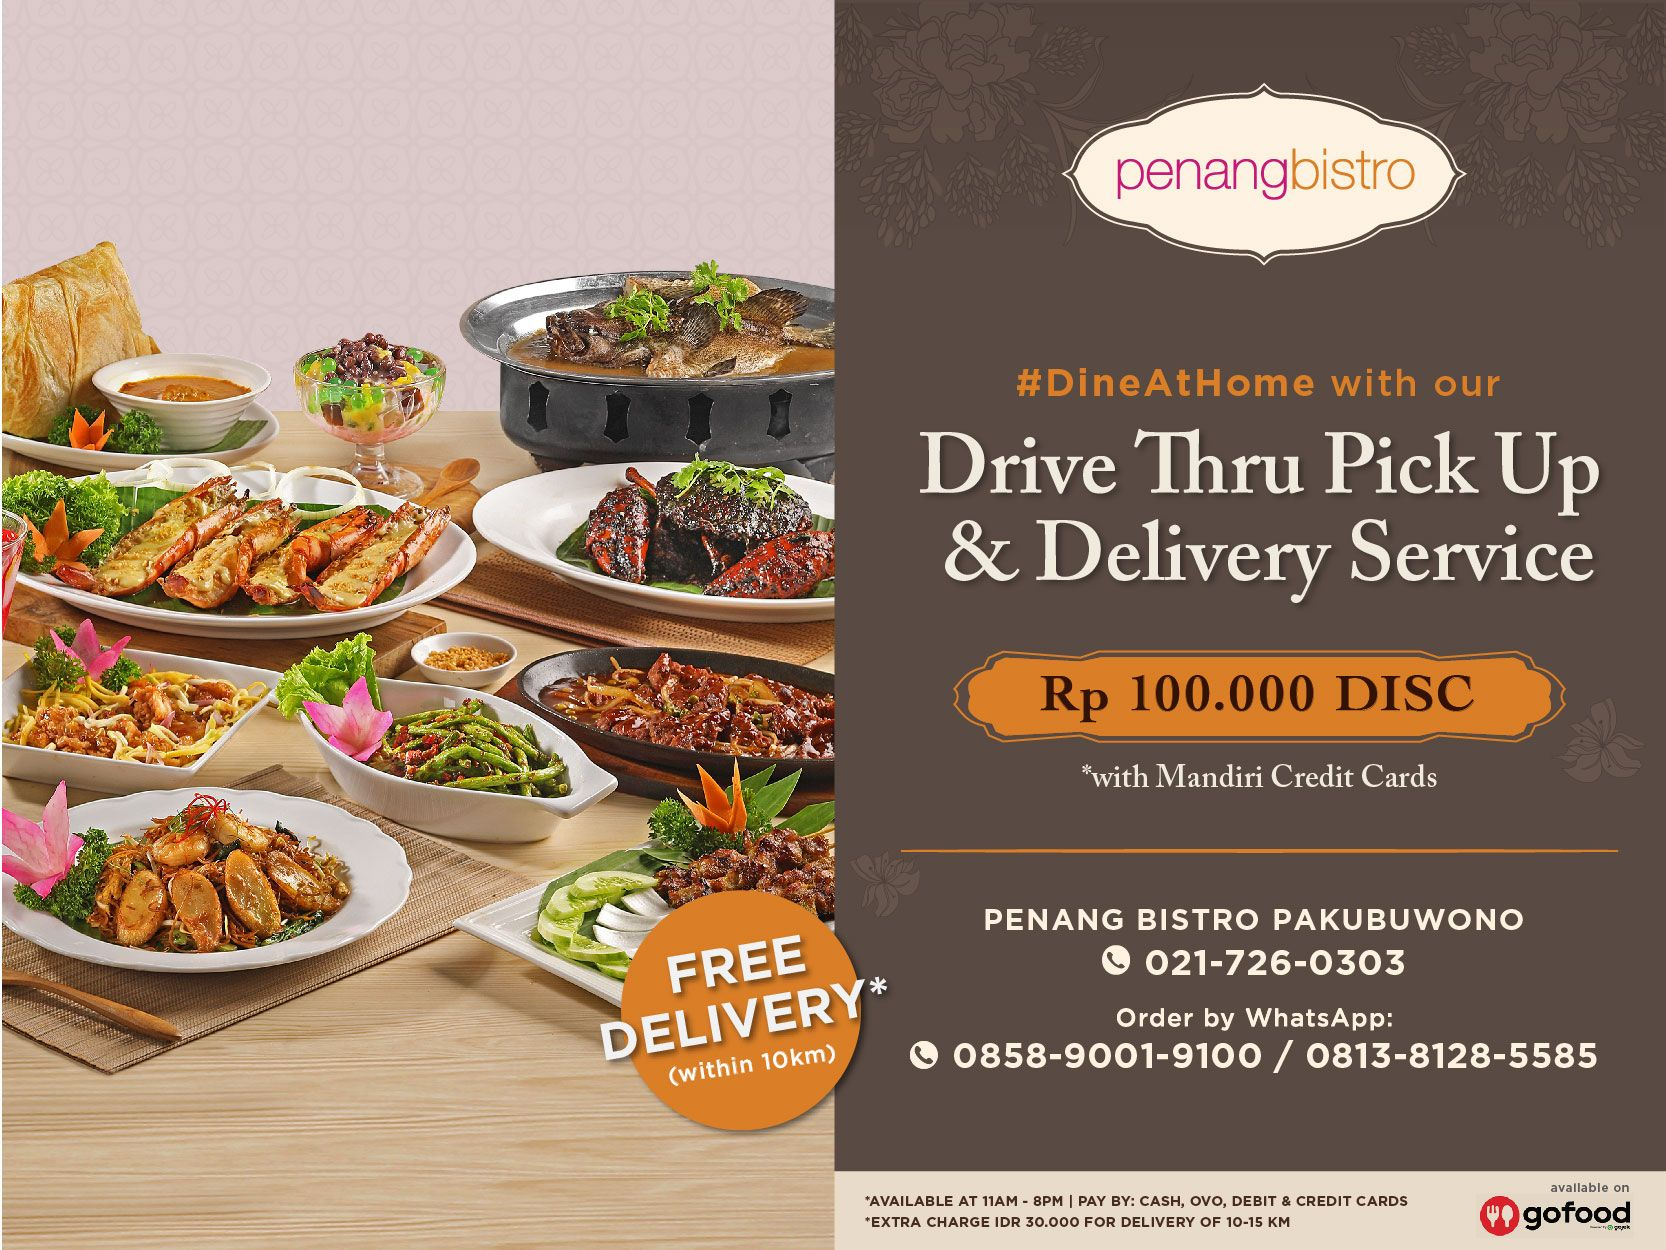 GET IDR 100,000 DISCOUNT FOR DRIVE THRU PICK UP & DELIVERY image